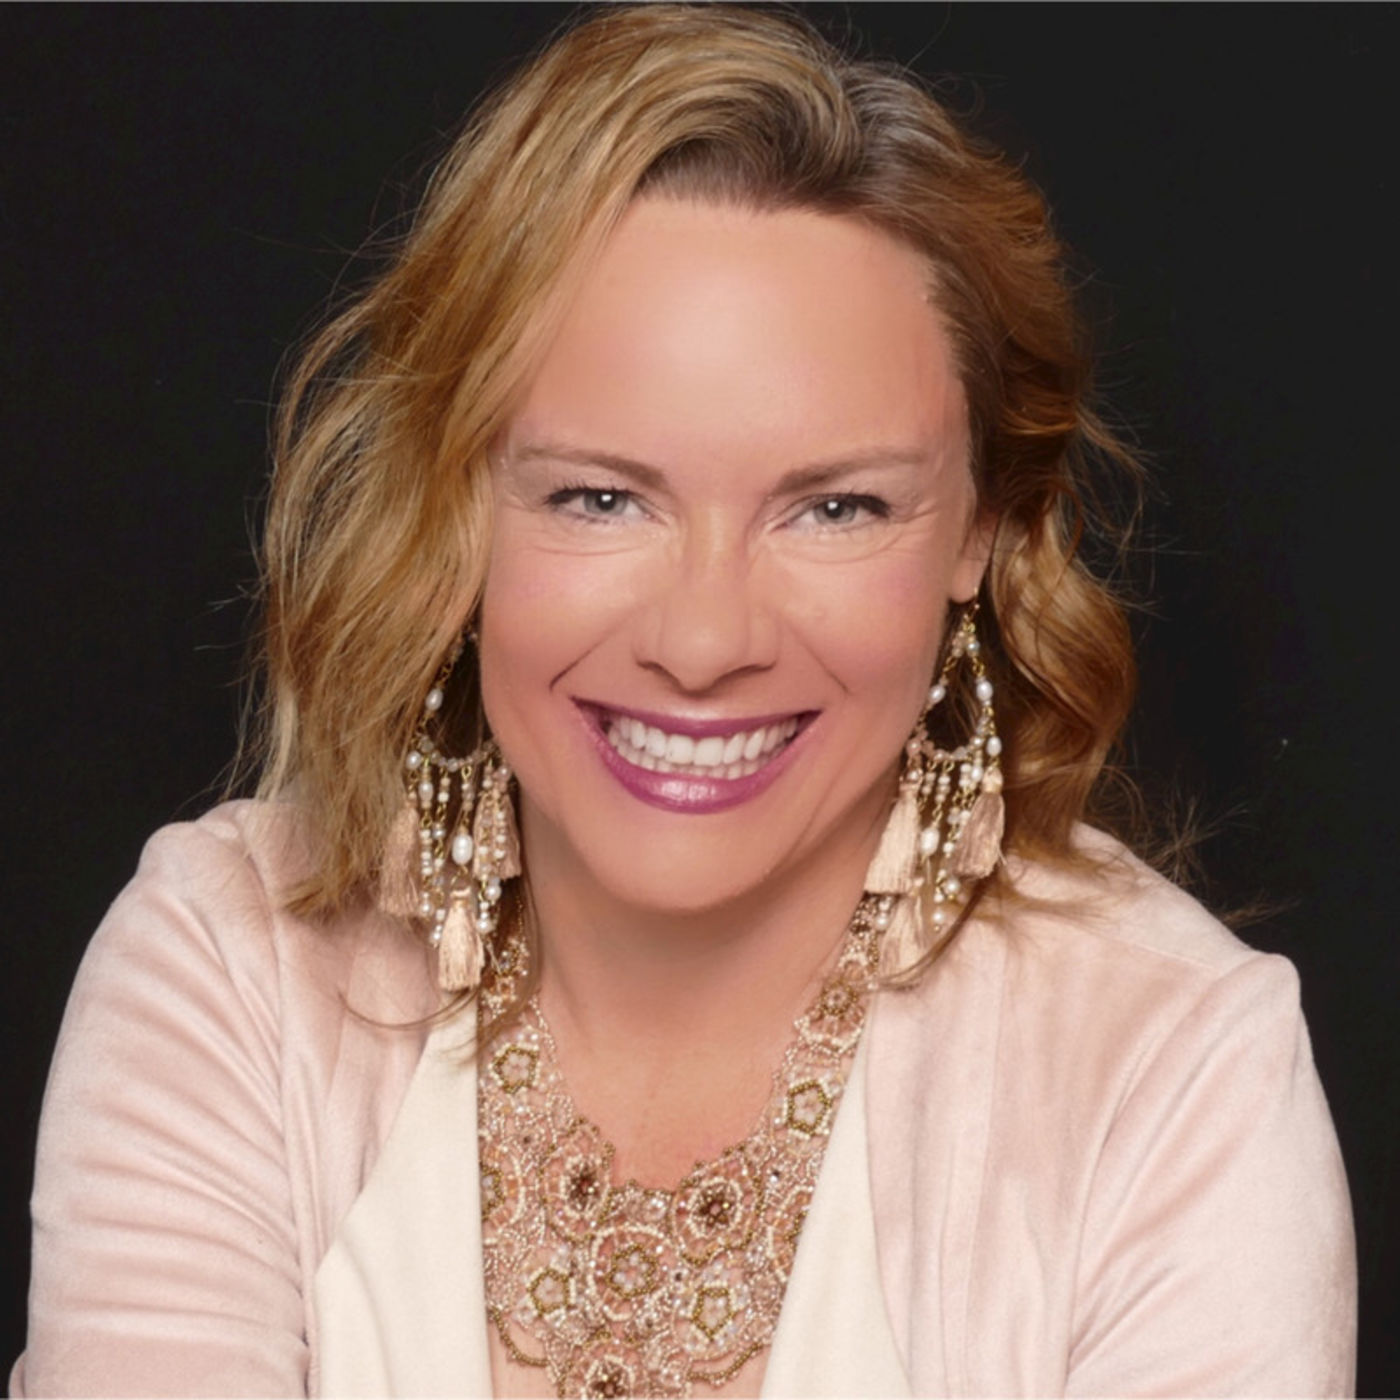 Social Selling and Your Personal Brand w/ Viveka von Rosen